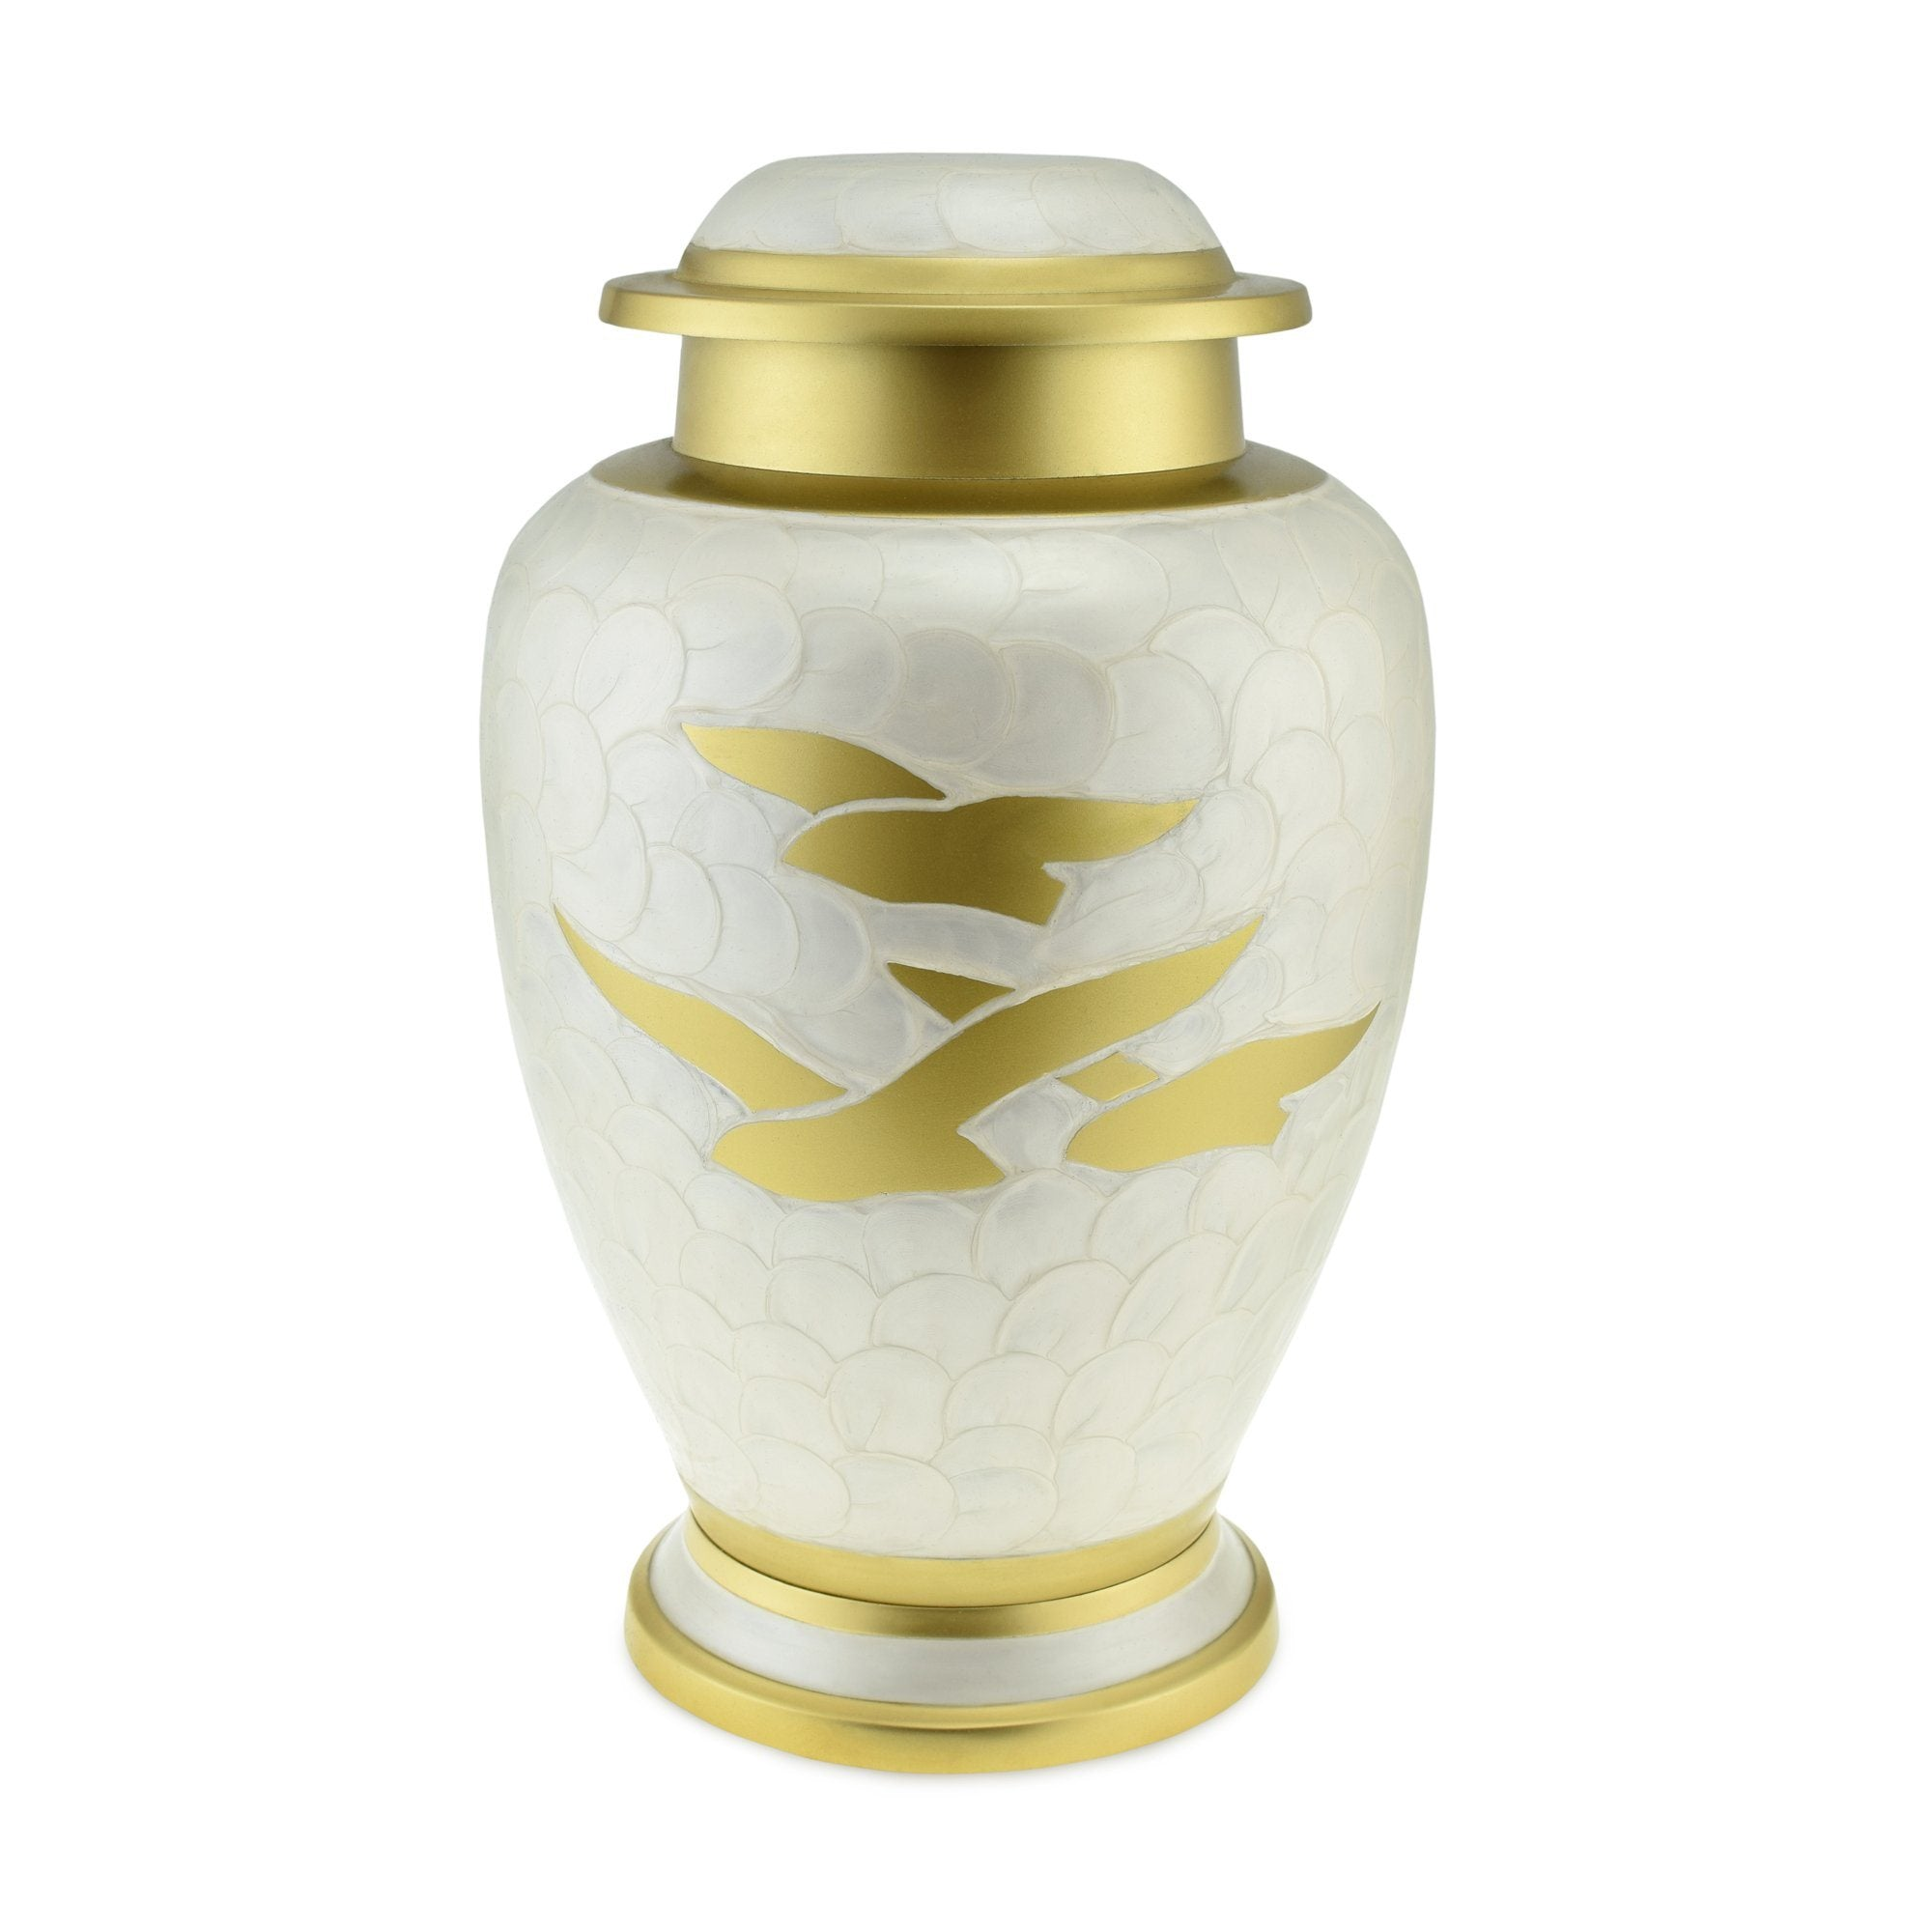 Double / Large Adult Cremation Urn for Ashes